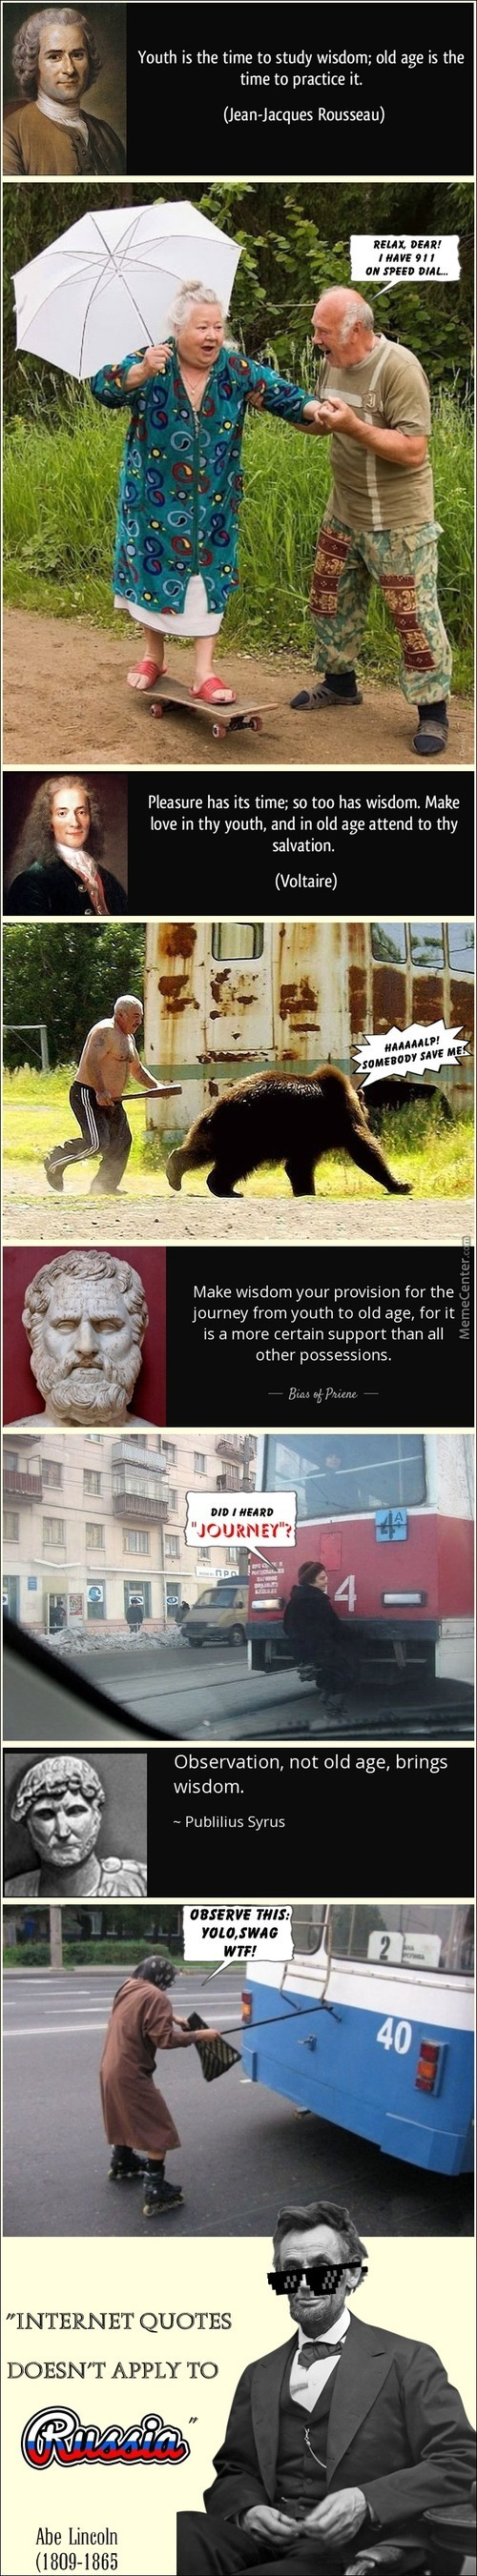 Wisdom, Quotes And Internet.